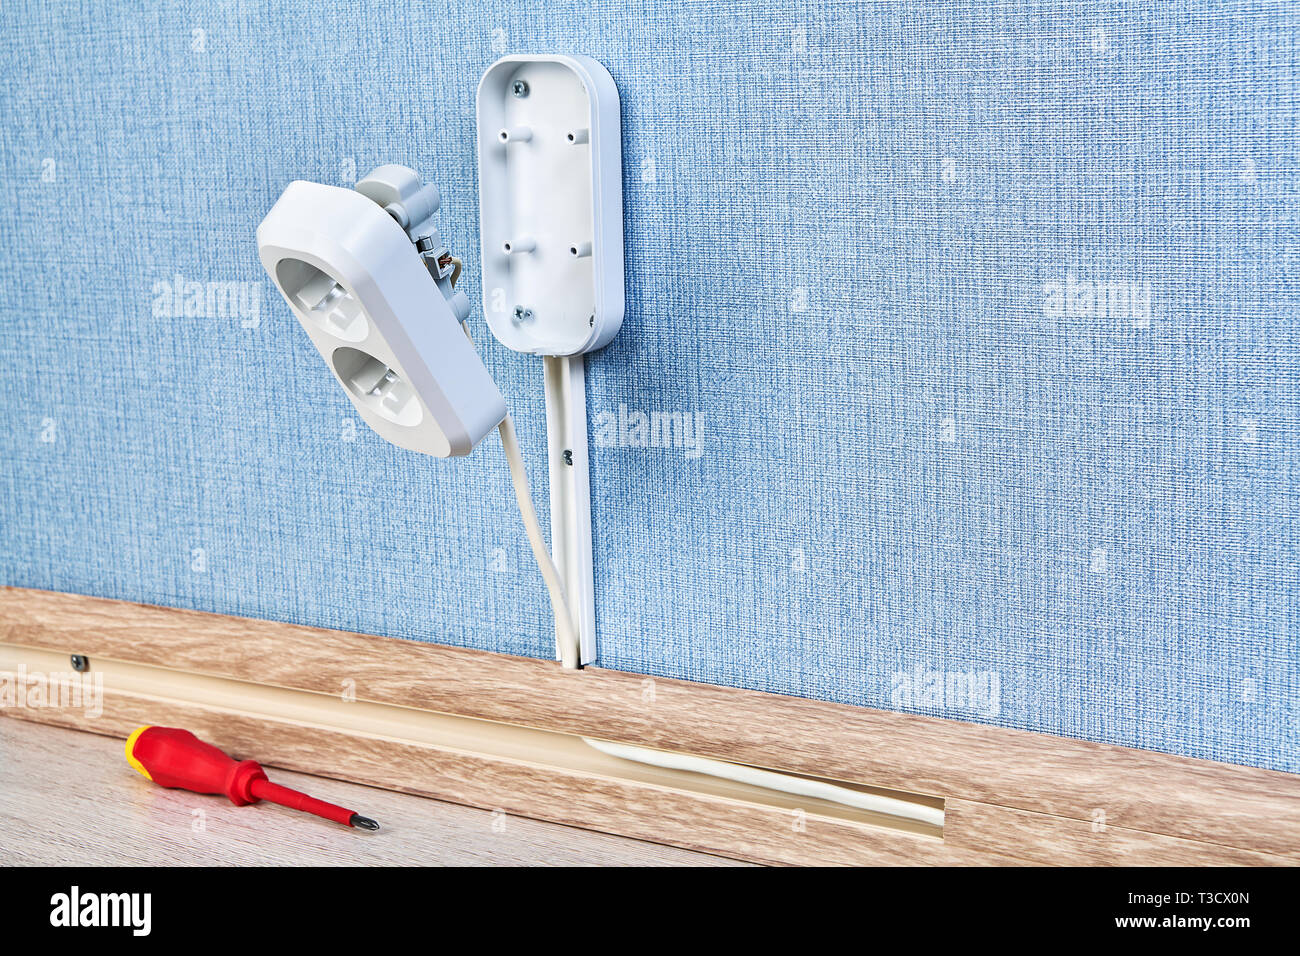 hight resolution of duplex receptacle outlet in process of mounting residential wiring work close up